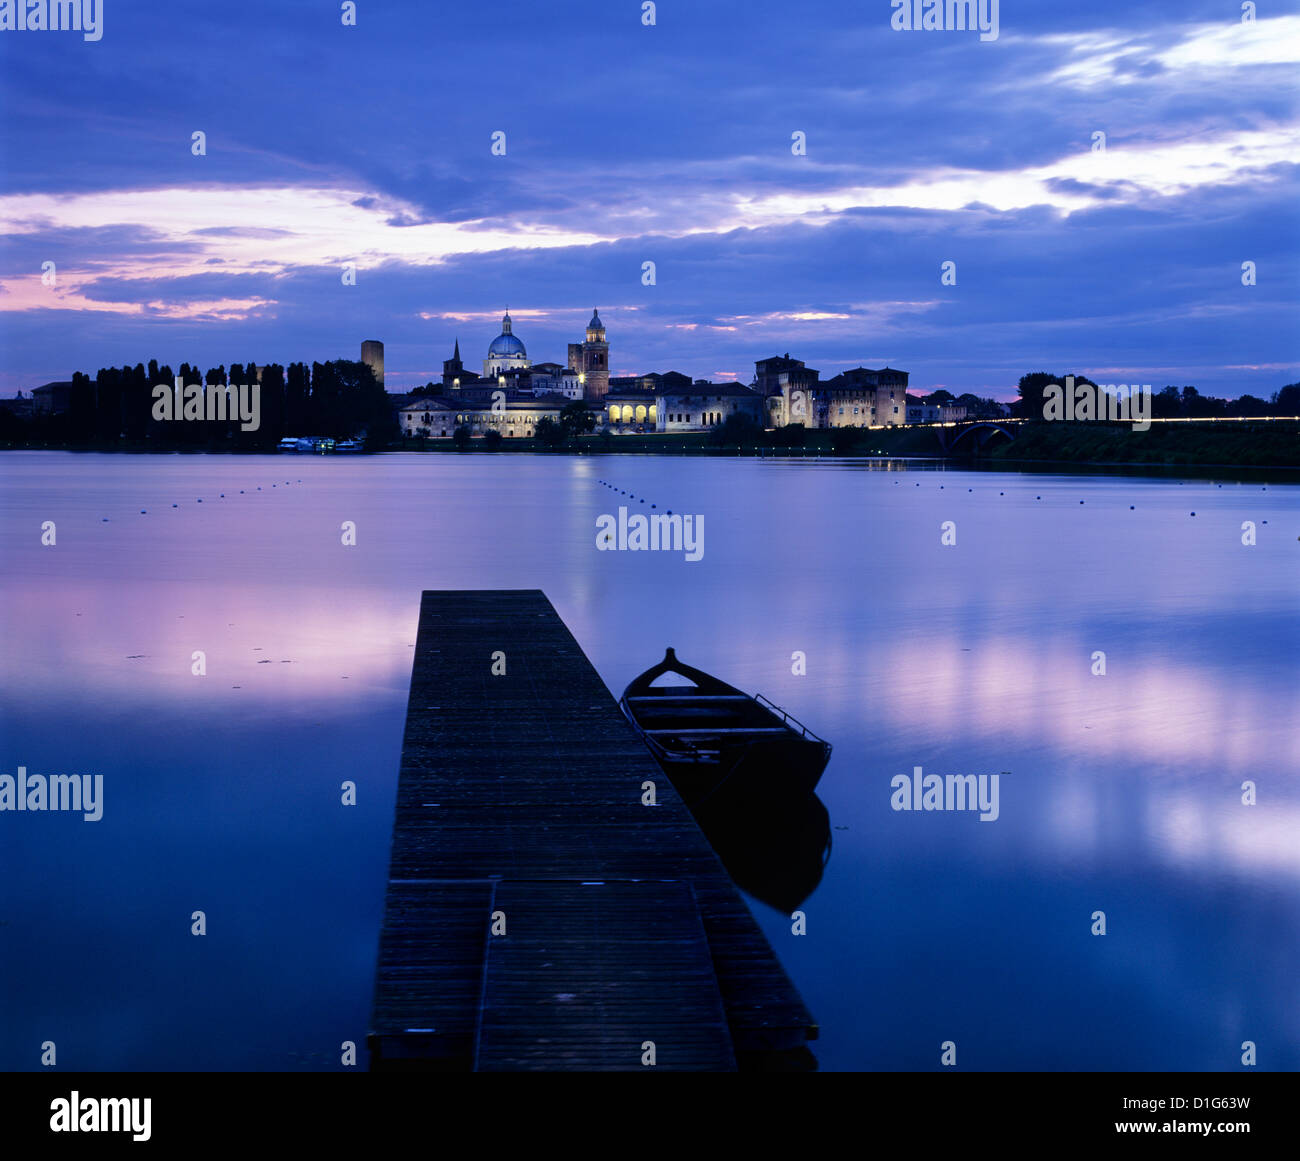 Dusk over the old town and Lake Inferiore, Mantua, Lombardy, Italy, Europe - Stock Image